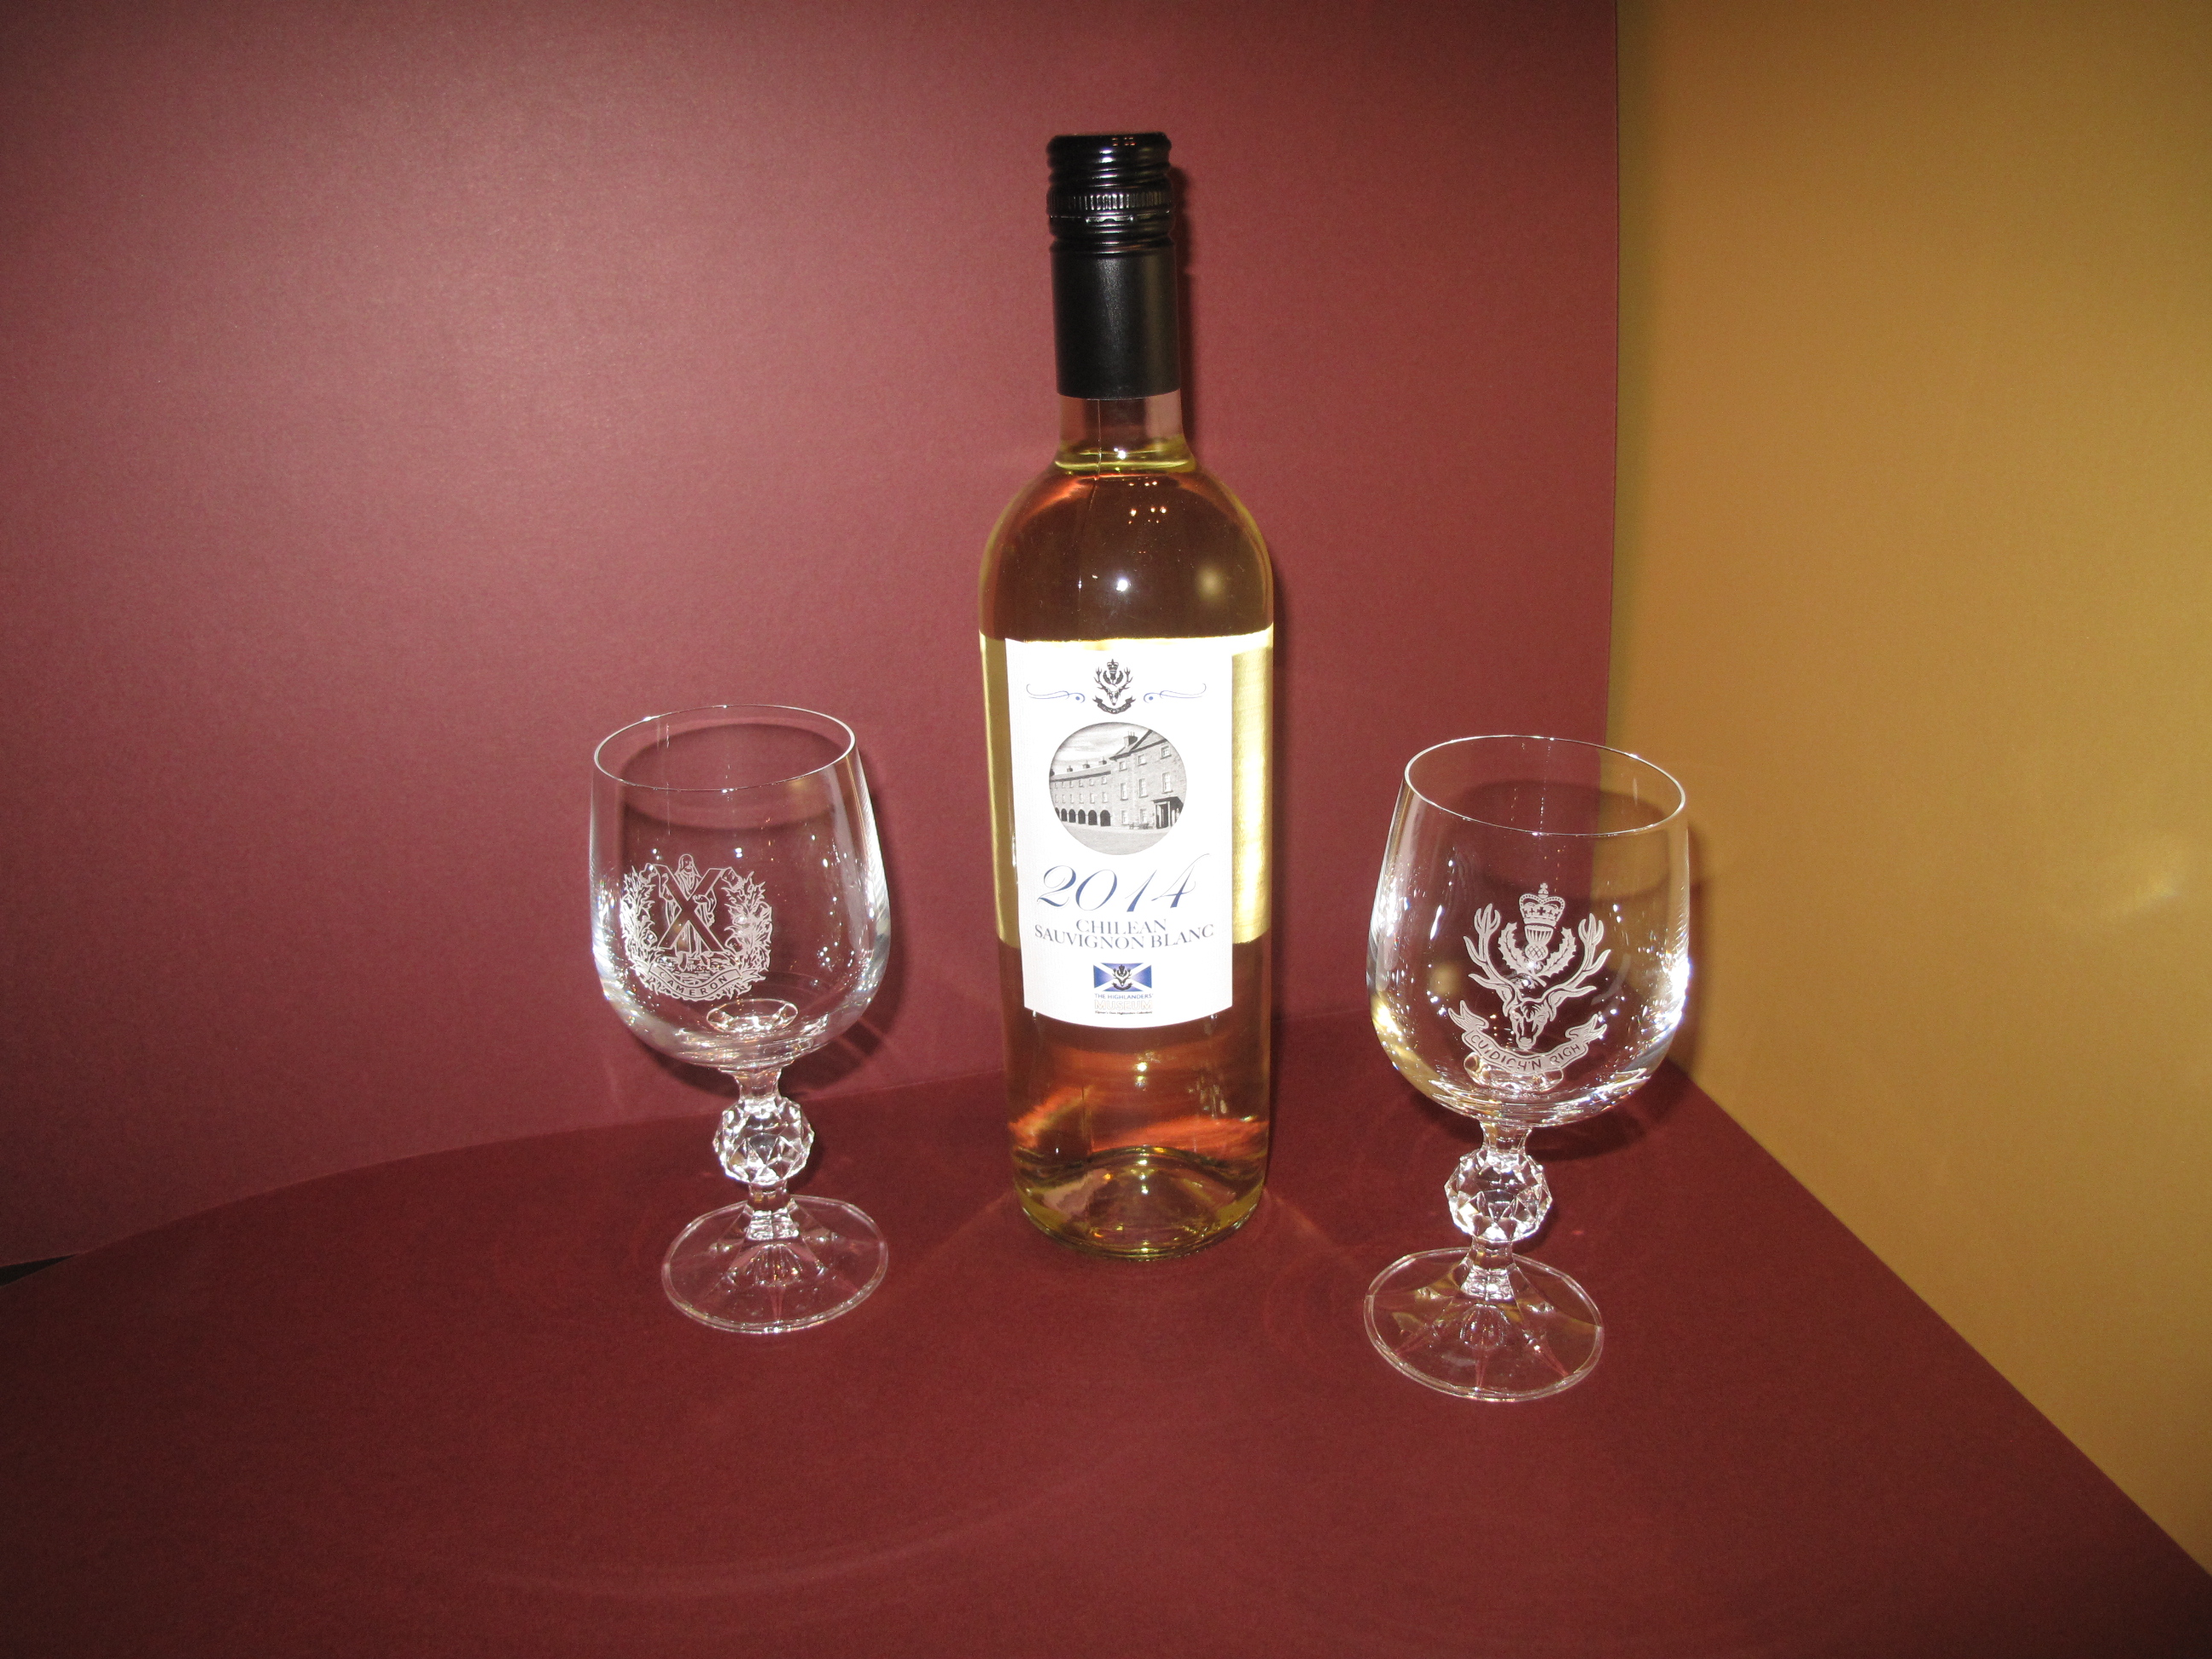 Seaforth Highlanders Wine Glasses - set of two